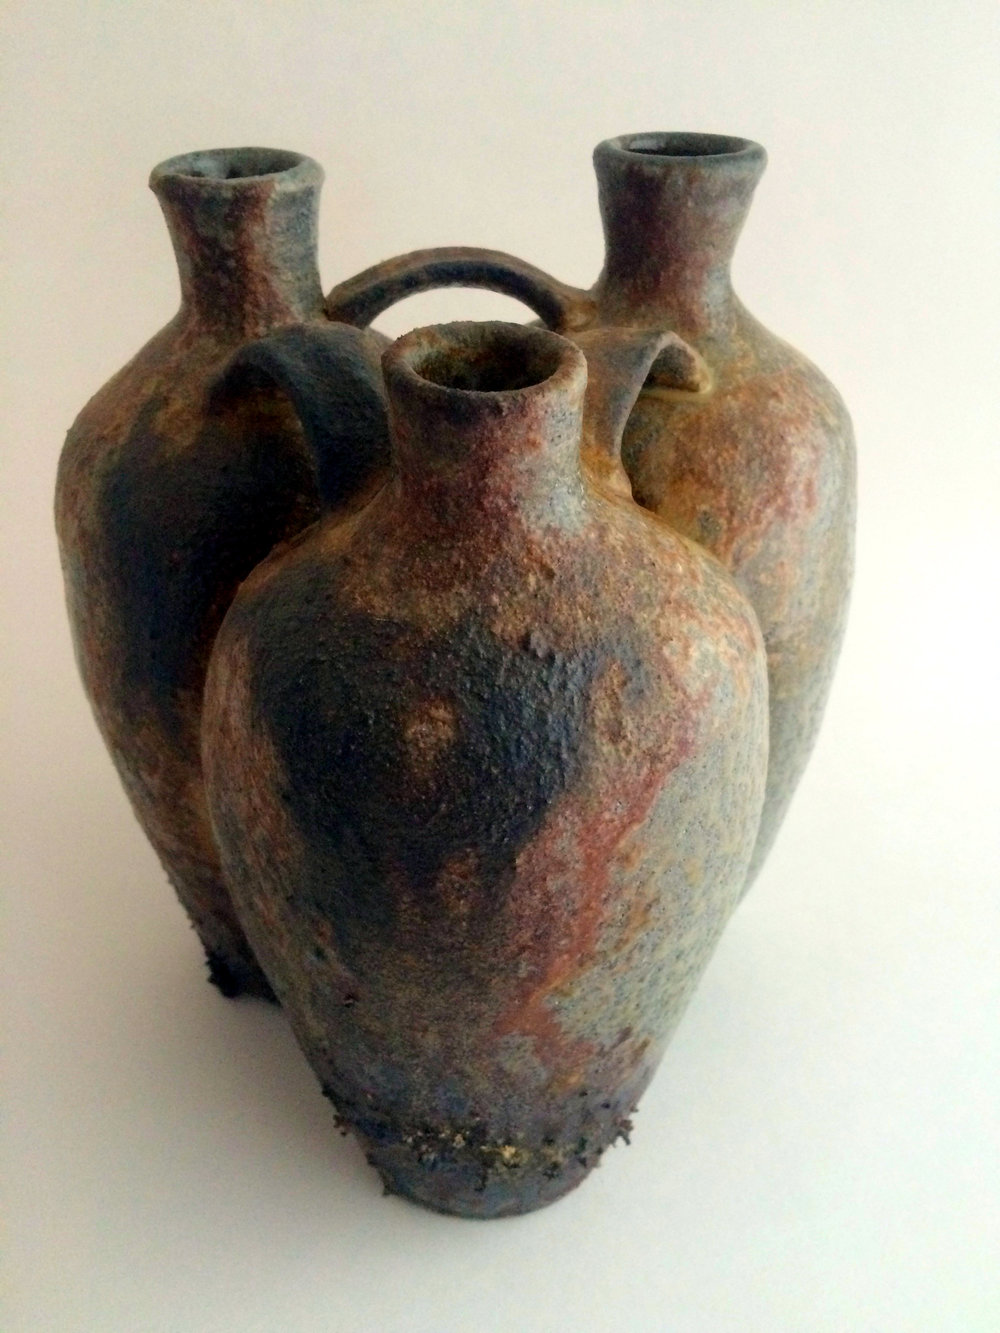 Wood-fired conjoined jug with heavy ash deposit from 2015